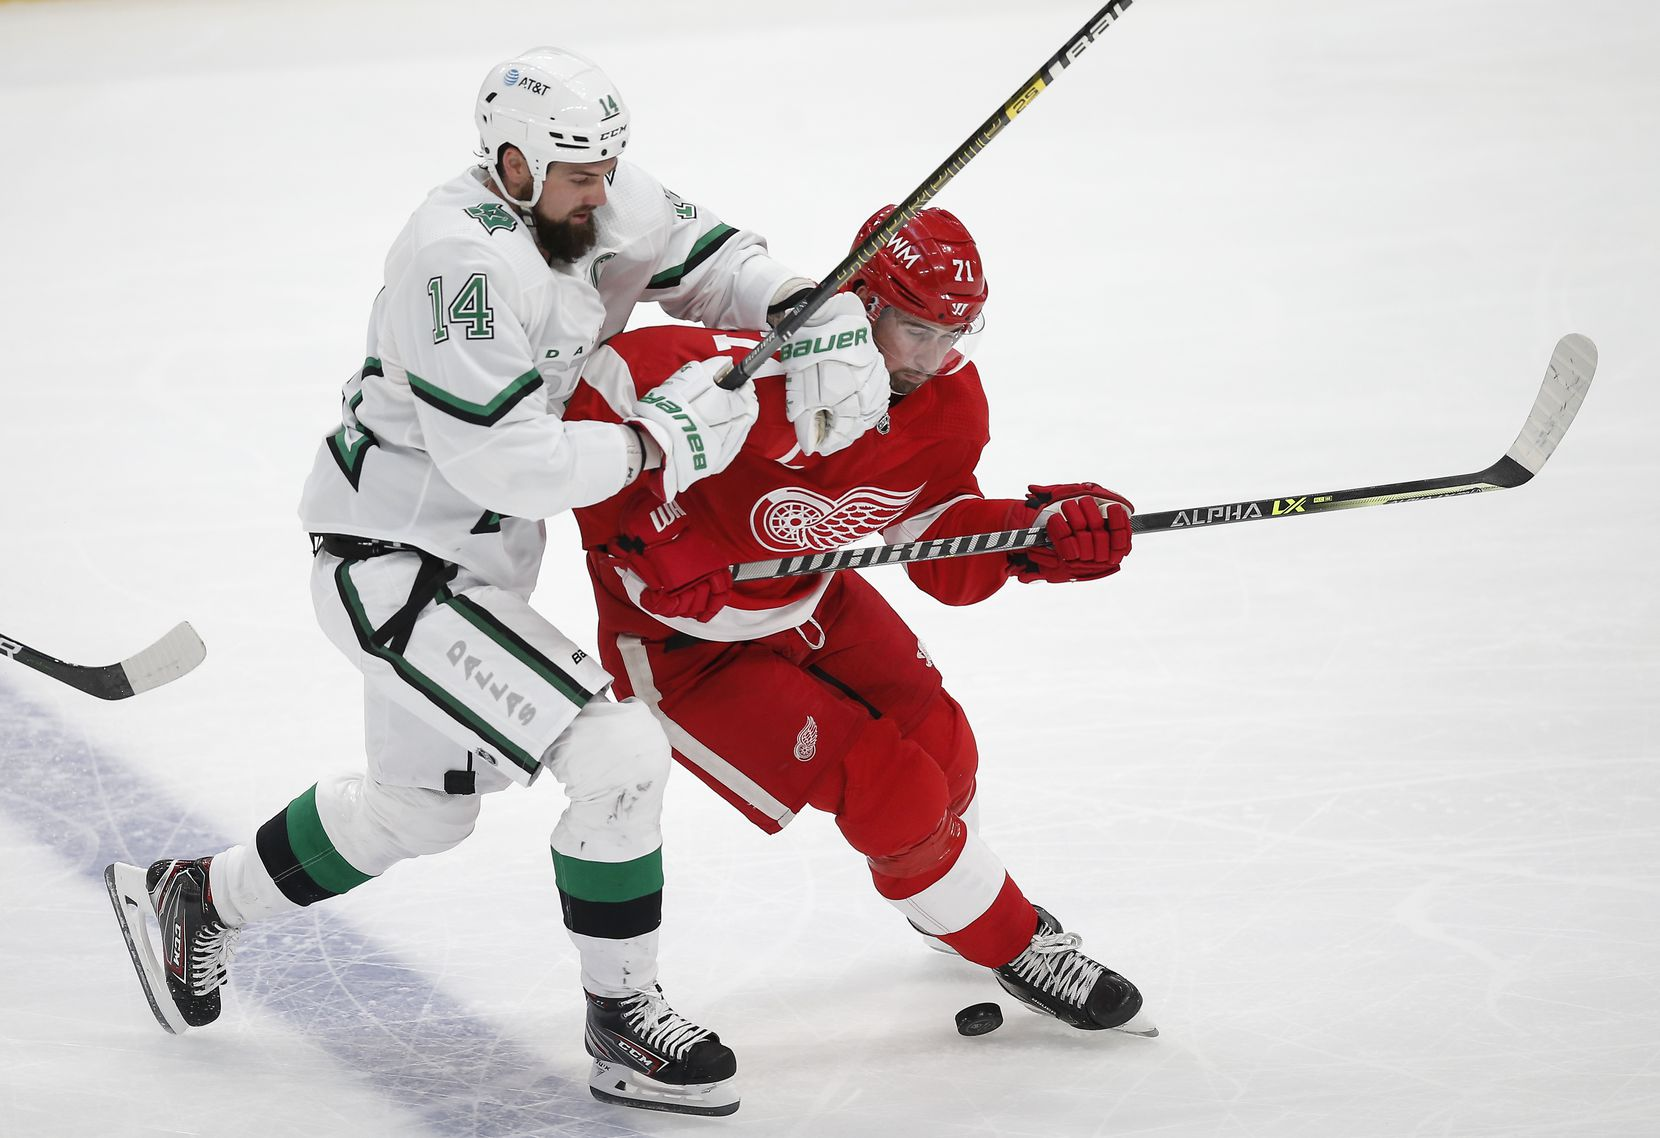 Dallas Stars forward Jamie Benn (14) battles Detroit Red Wings forward Dylan Larkin (71) for the puck during the first period of an NHL hockey game in Dallas, Monday, April 19, 2021. (Brandon Wade/Special Contributor)